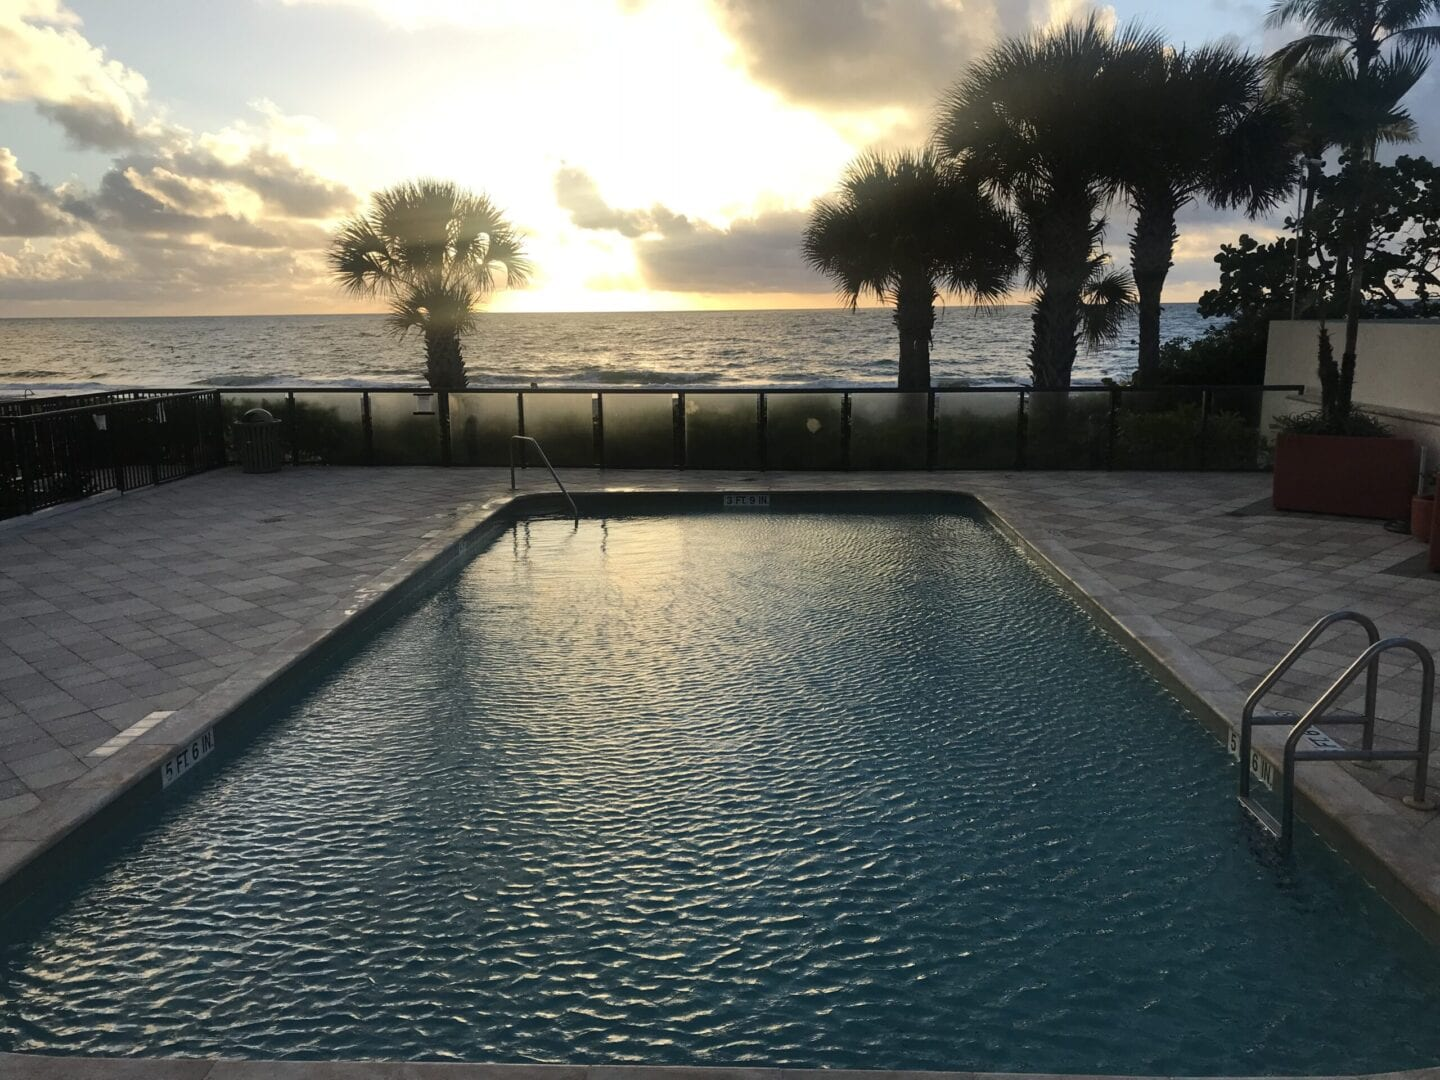 Pool near the beach enclosed by a black fence and frosted glass